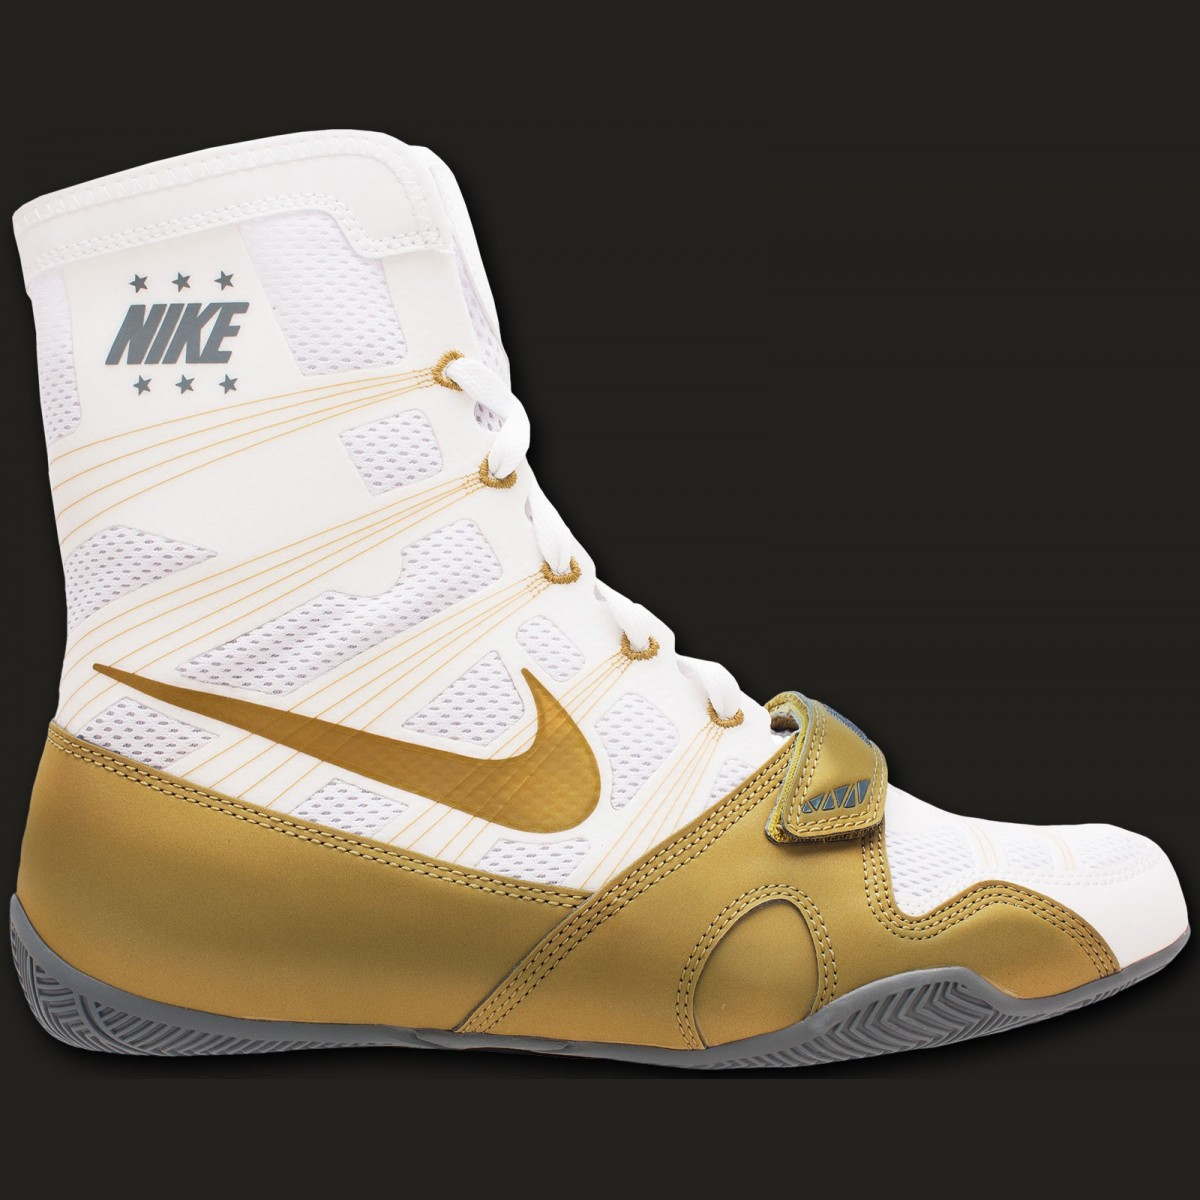 7c2af1f01f4e Nike HyperKO boxingboot White metallic gold.  https   www.paffen-sport.com 857-3185-